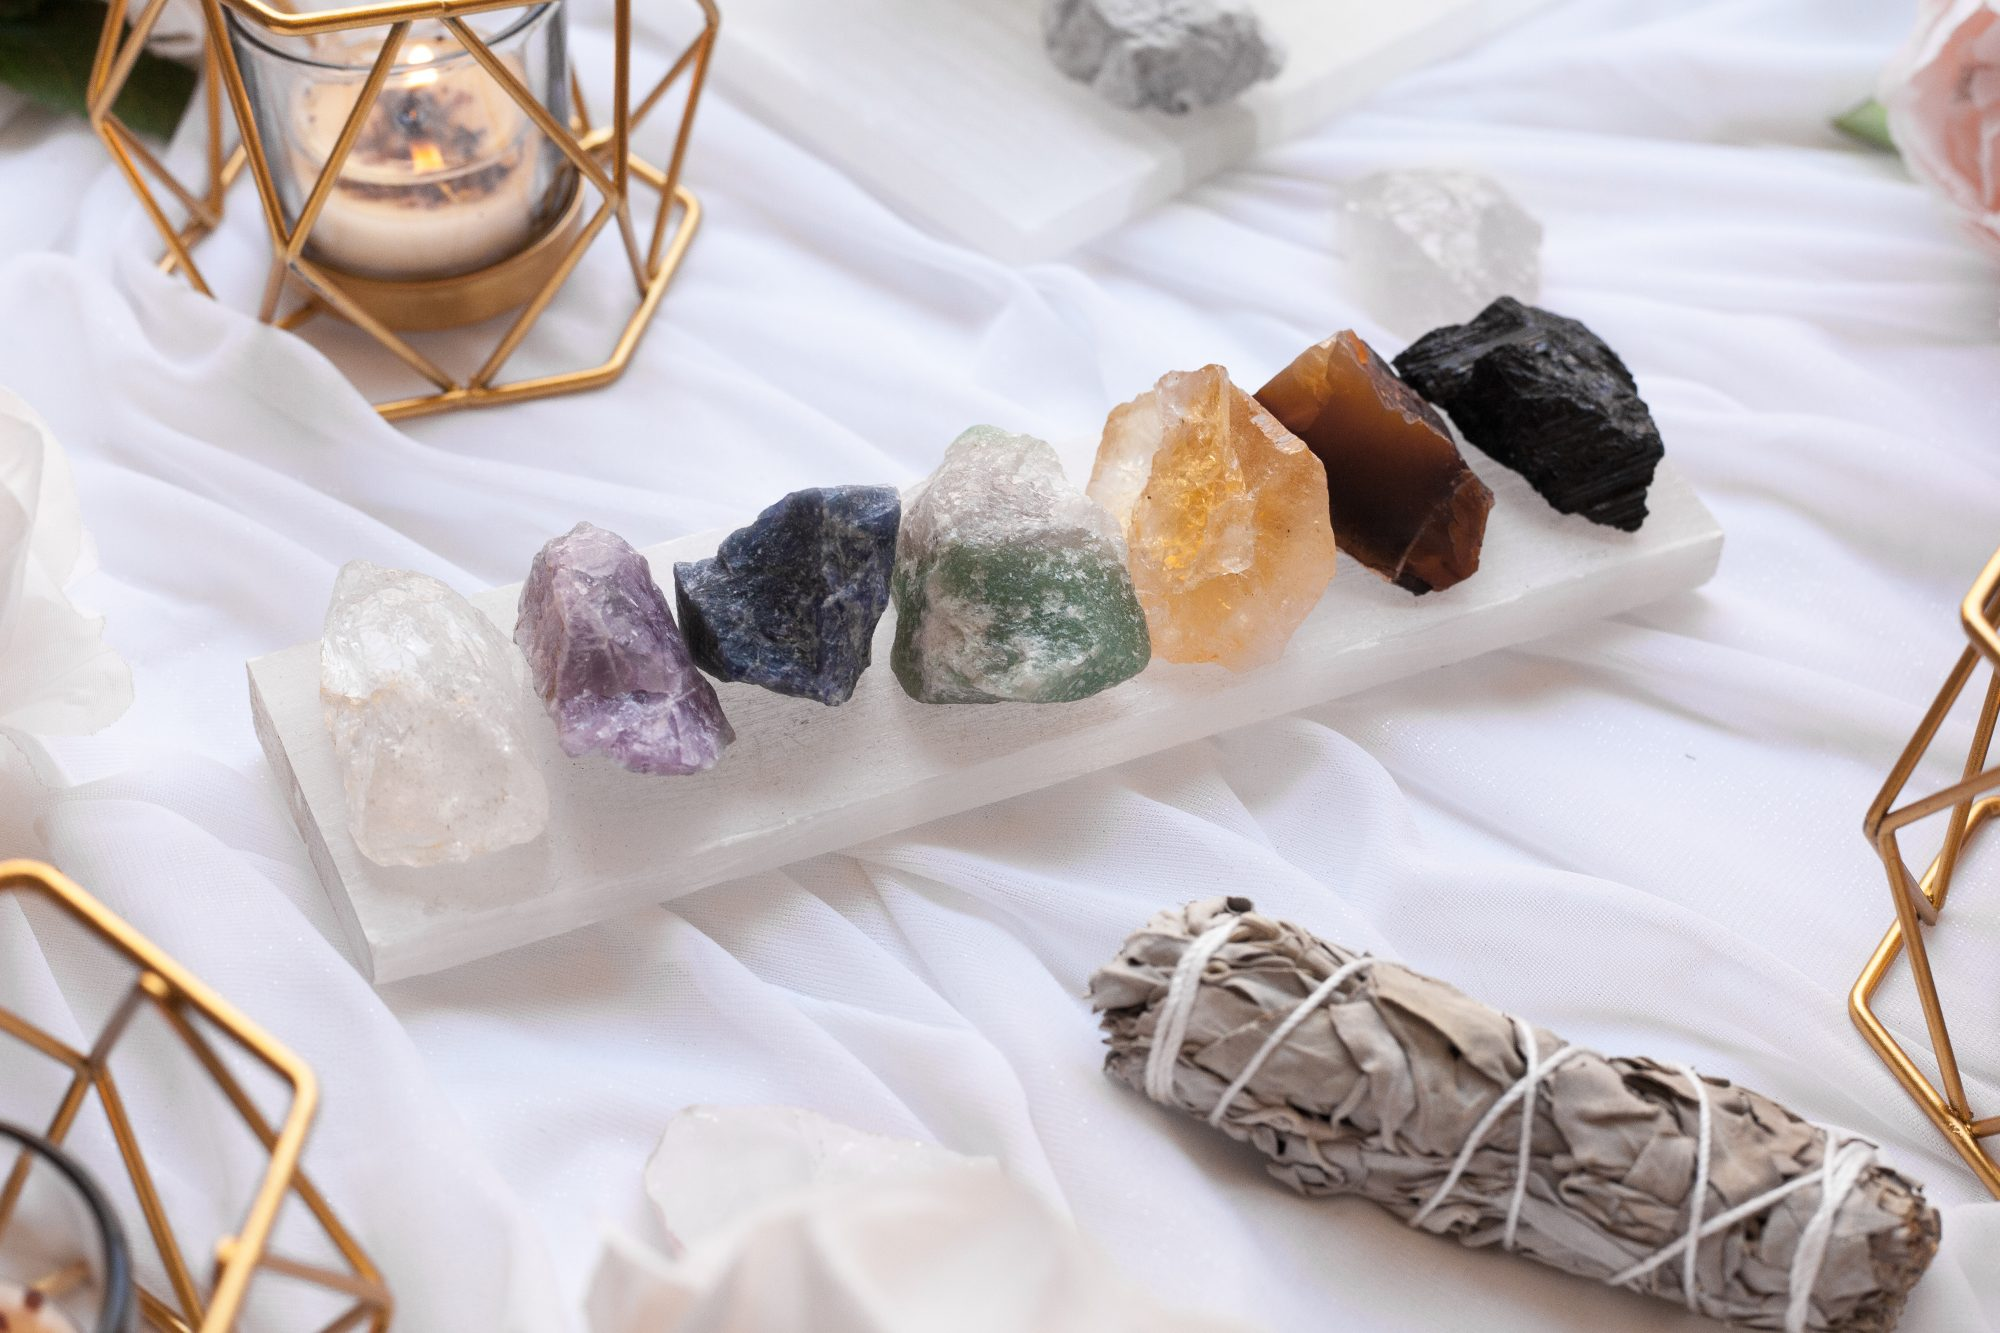 Every crystal helps to open up a specific chakra, or energy centers, in the body (there are 7). Any issues you may have will correlate to energy blockages in its respective chakra. - www.theballeronabudget.com